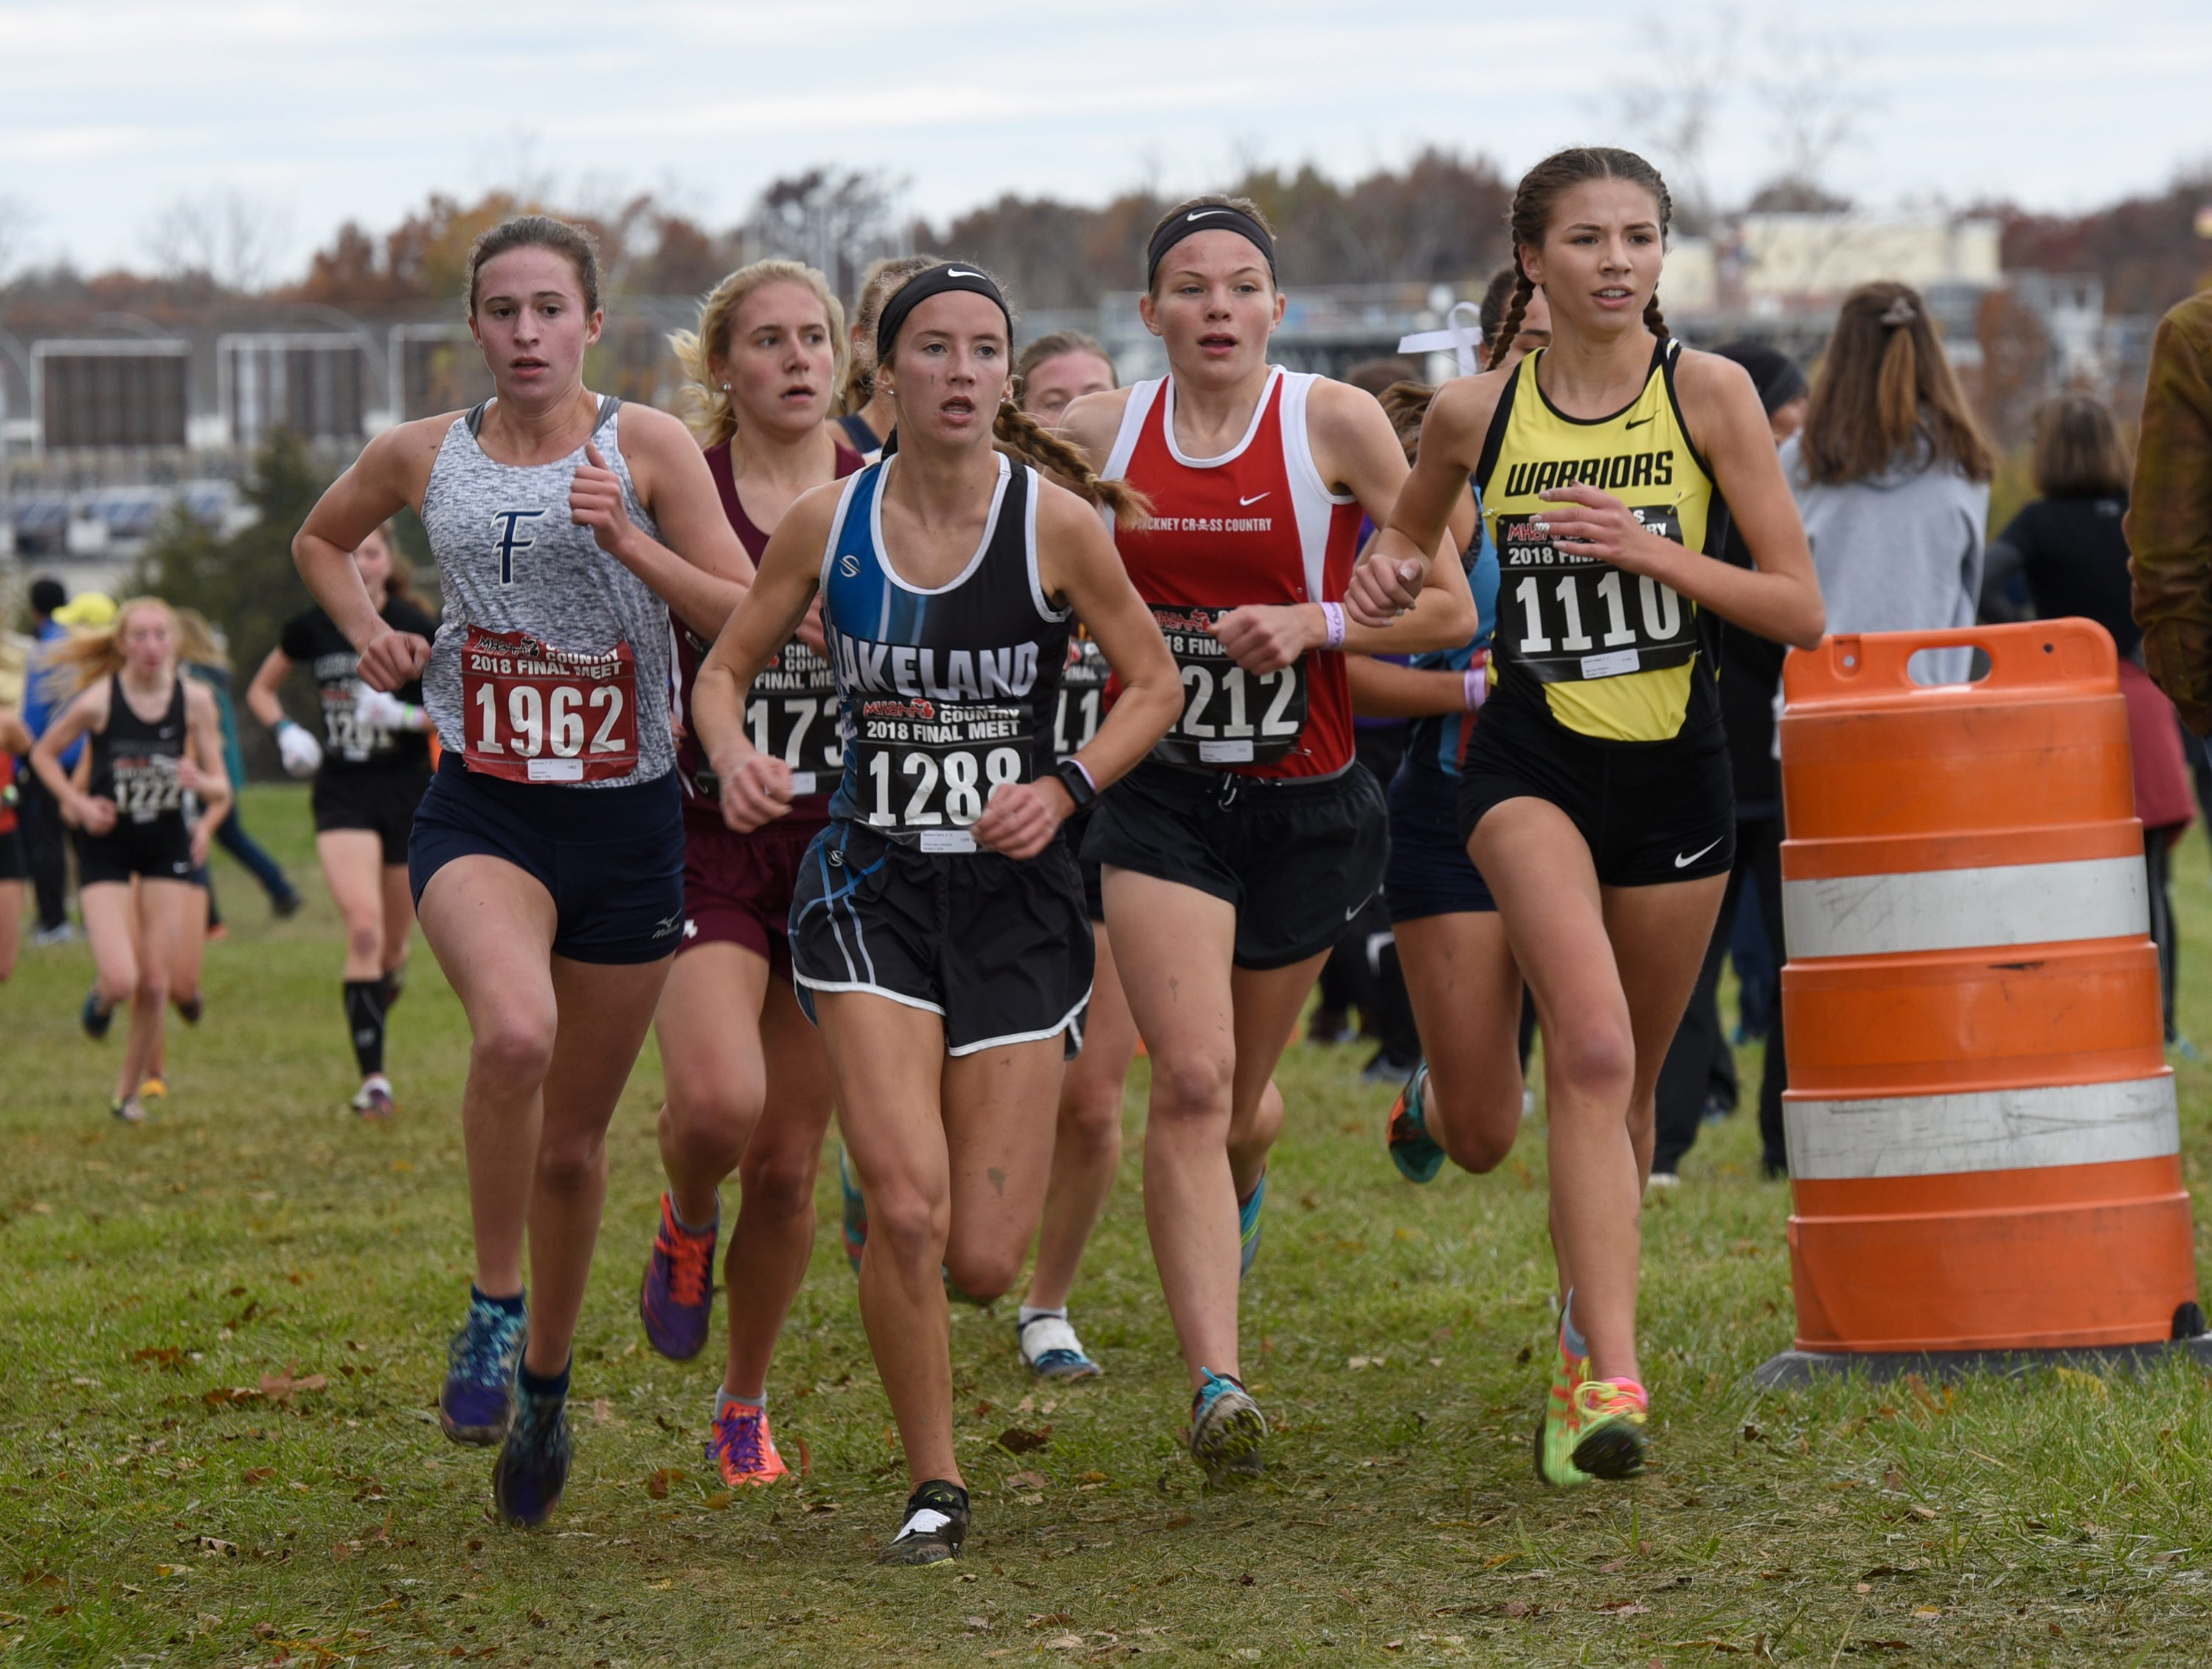 Lakeland's Madeline Rehm (1288) during the Division 1 2018 cross country finals at Michigan International Speedway.